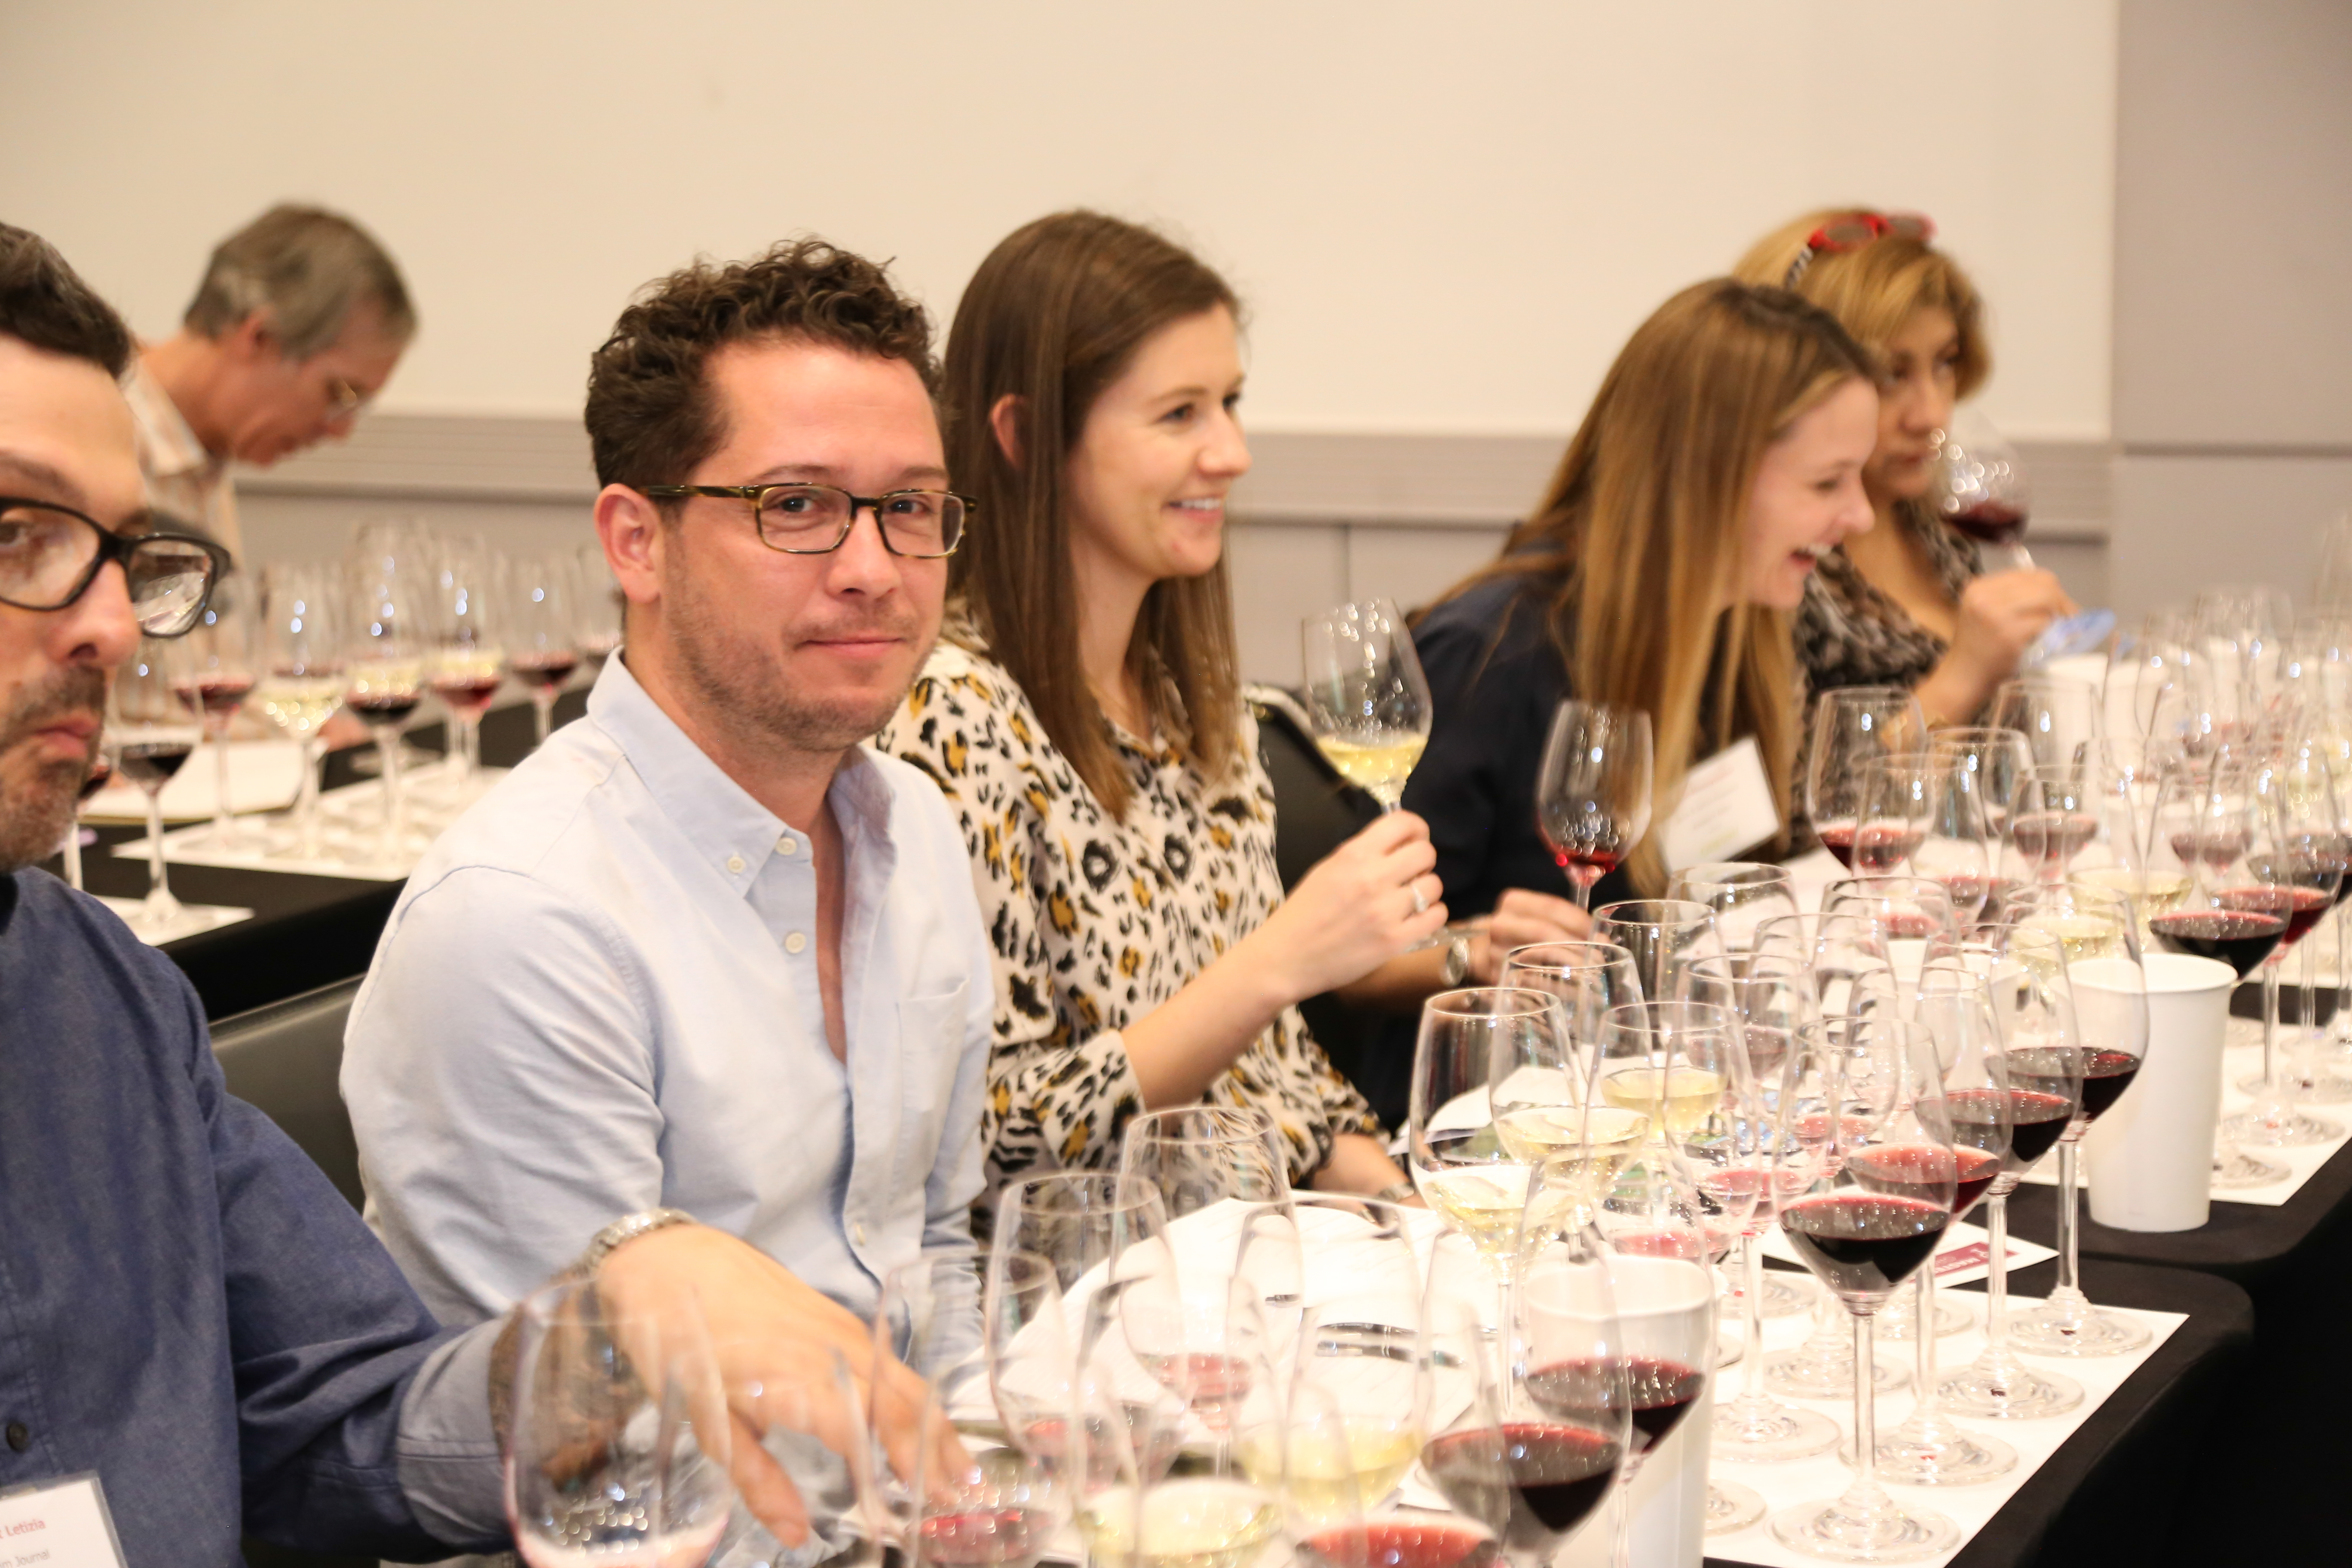 Man at a wine master class with many glass of wine in front of him